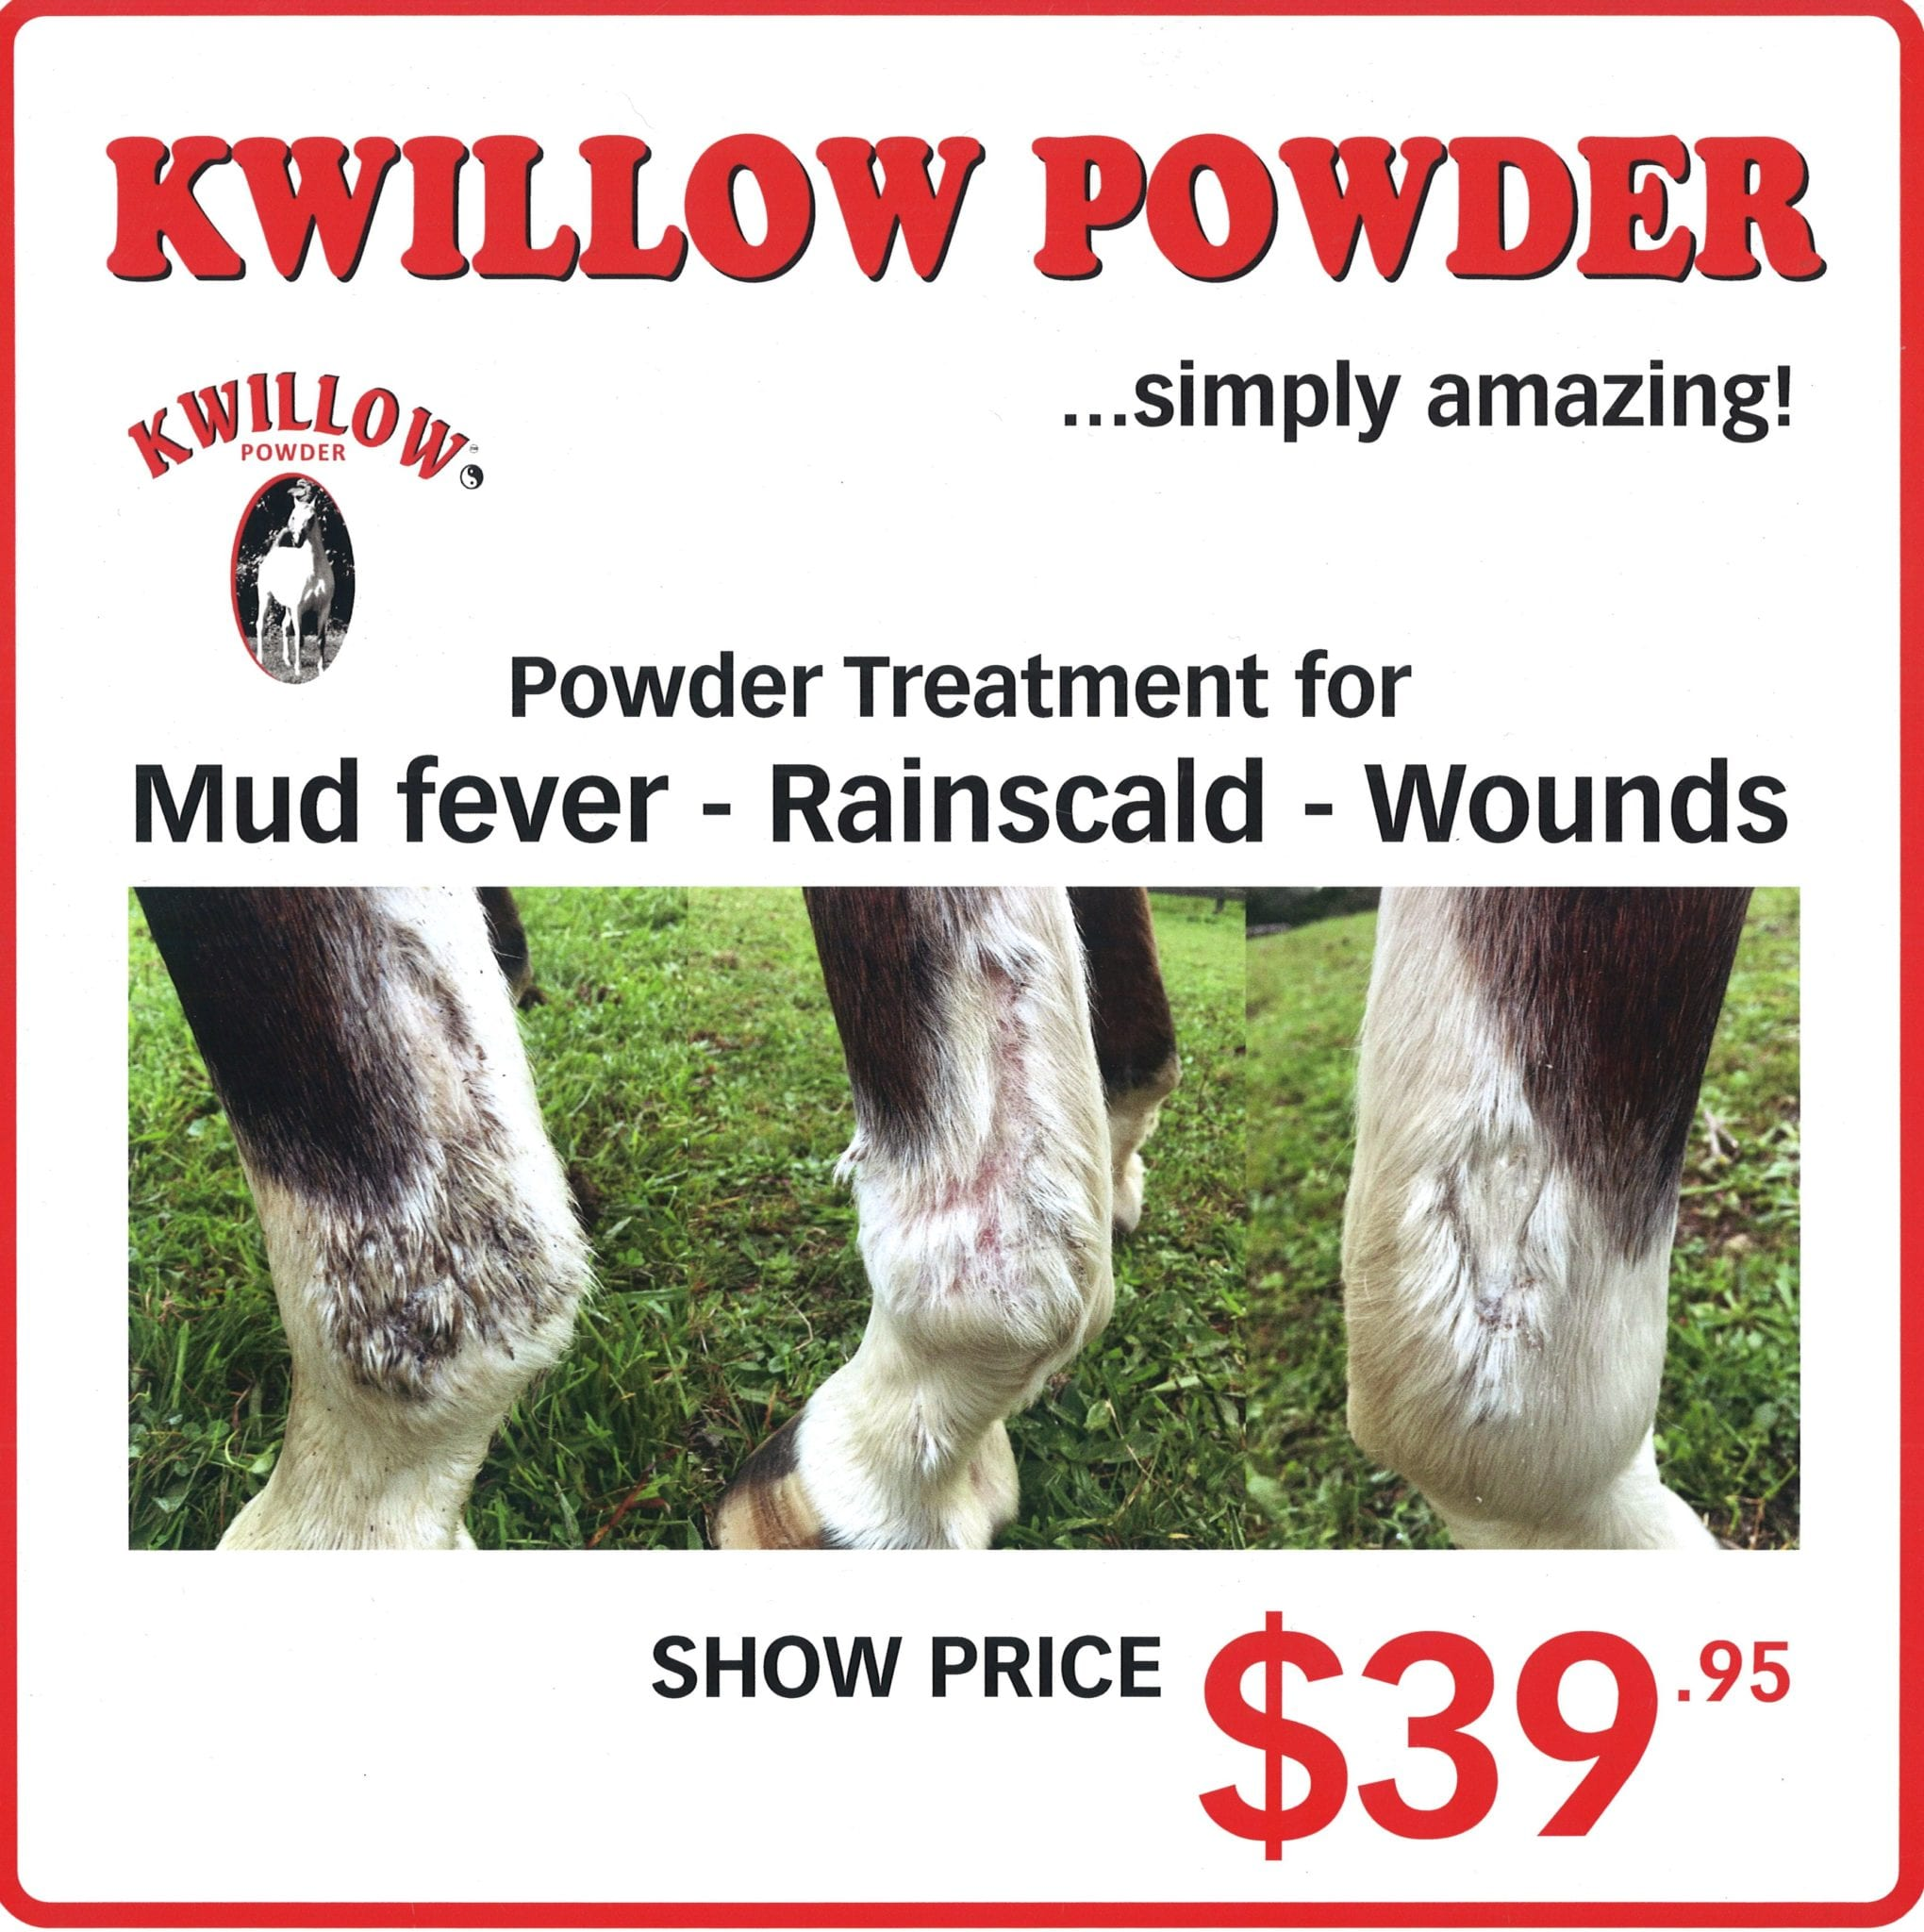 EQUINE PRODUCT ALERT – KWILLOW POWDER For Treatment Of Of Mud Fever, Rainscald And Wounds